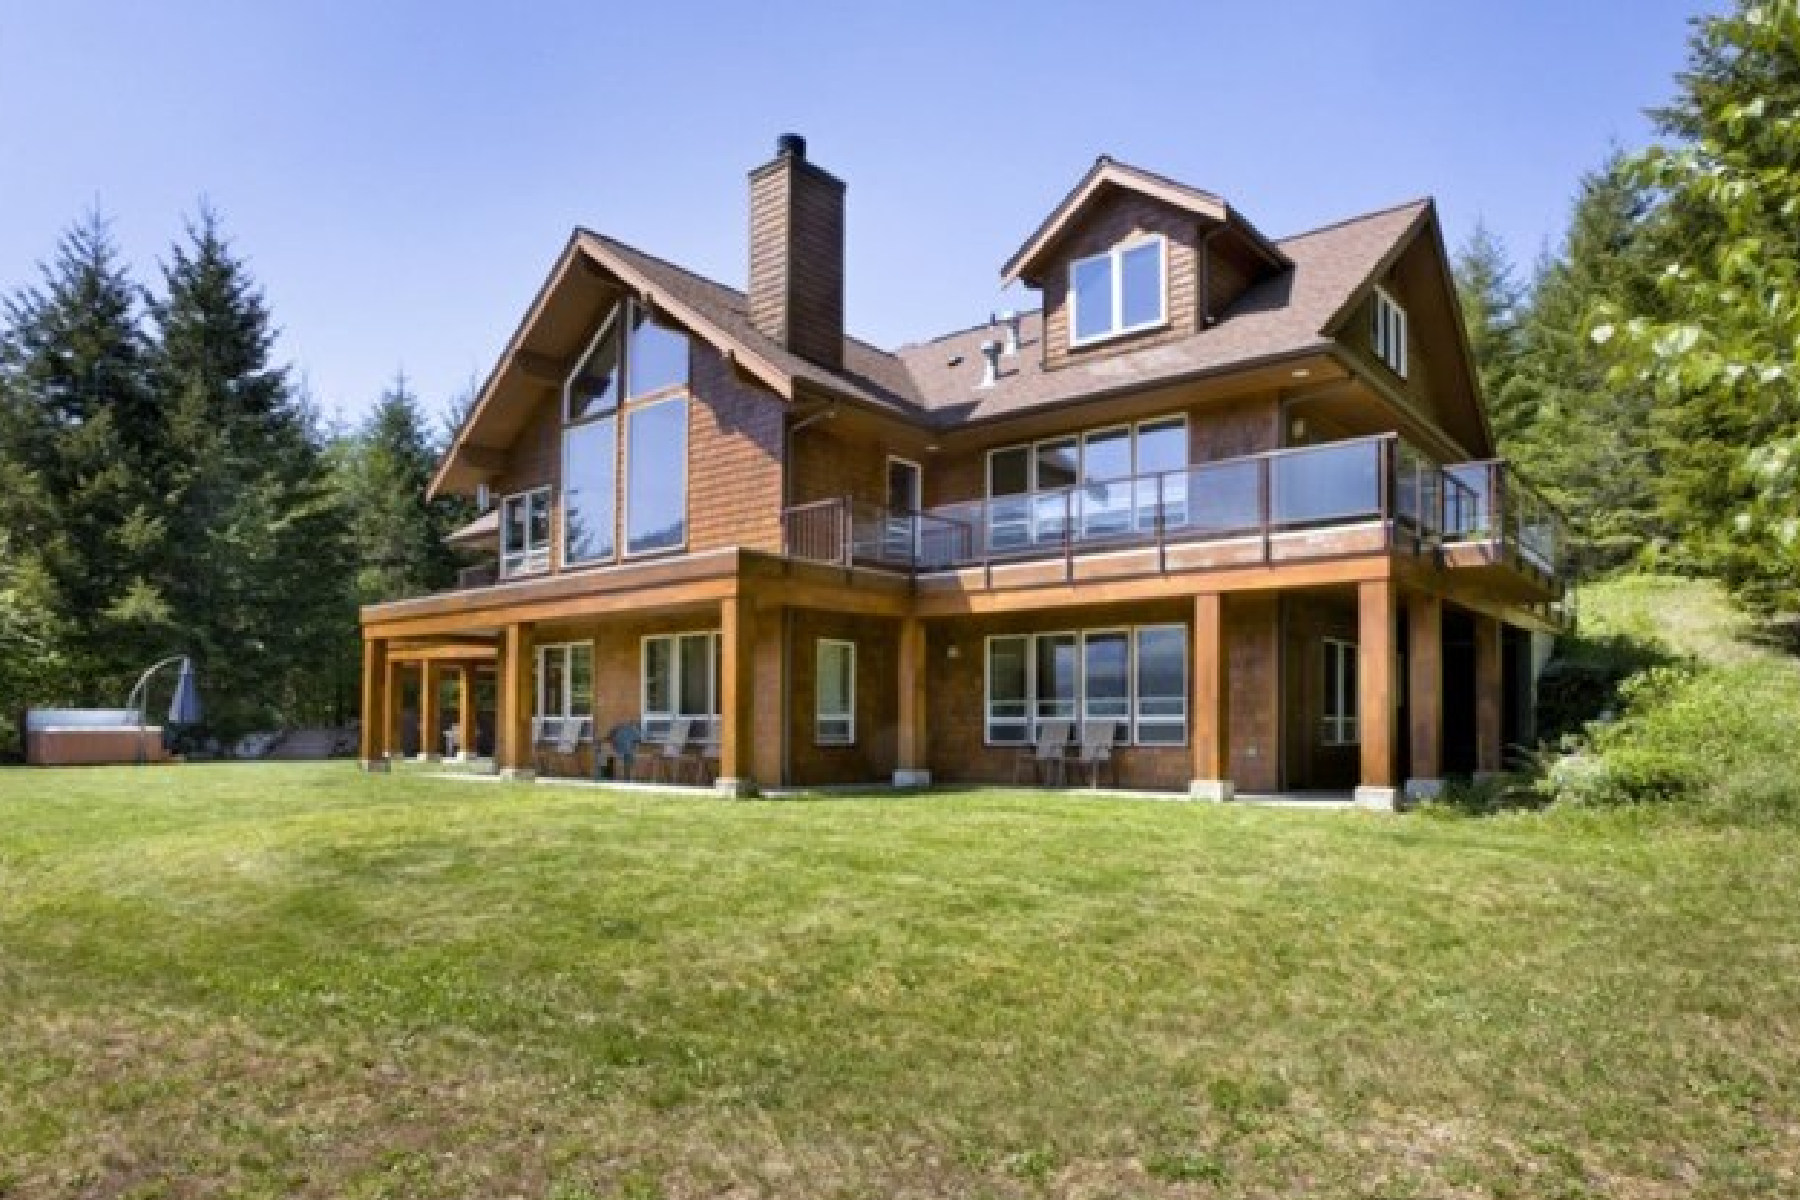 Villa per Vendita alle ore Mt. Baker Retreat 8174 Mt. Baker Hwy Deming, Washington, 98244 Stati Uniti